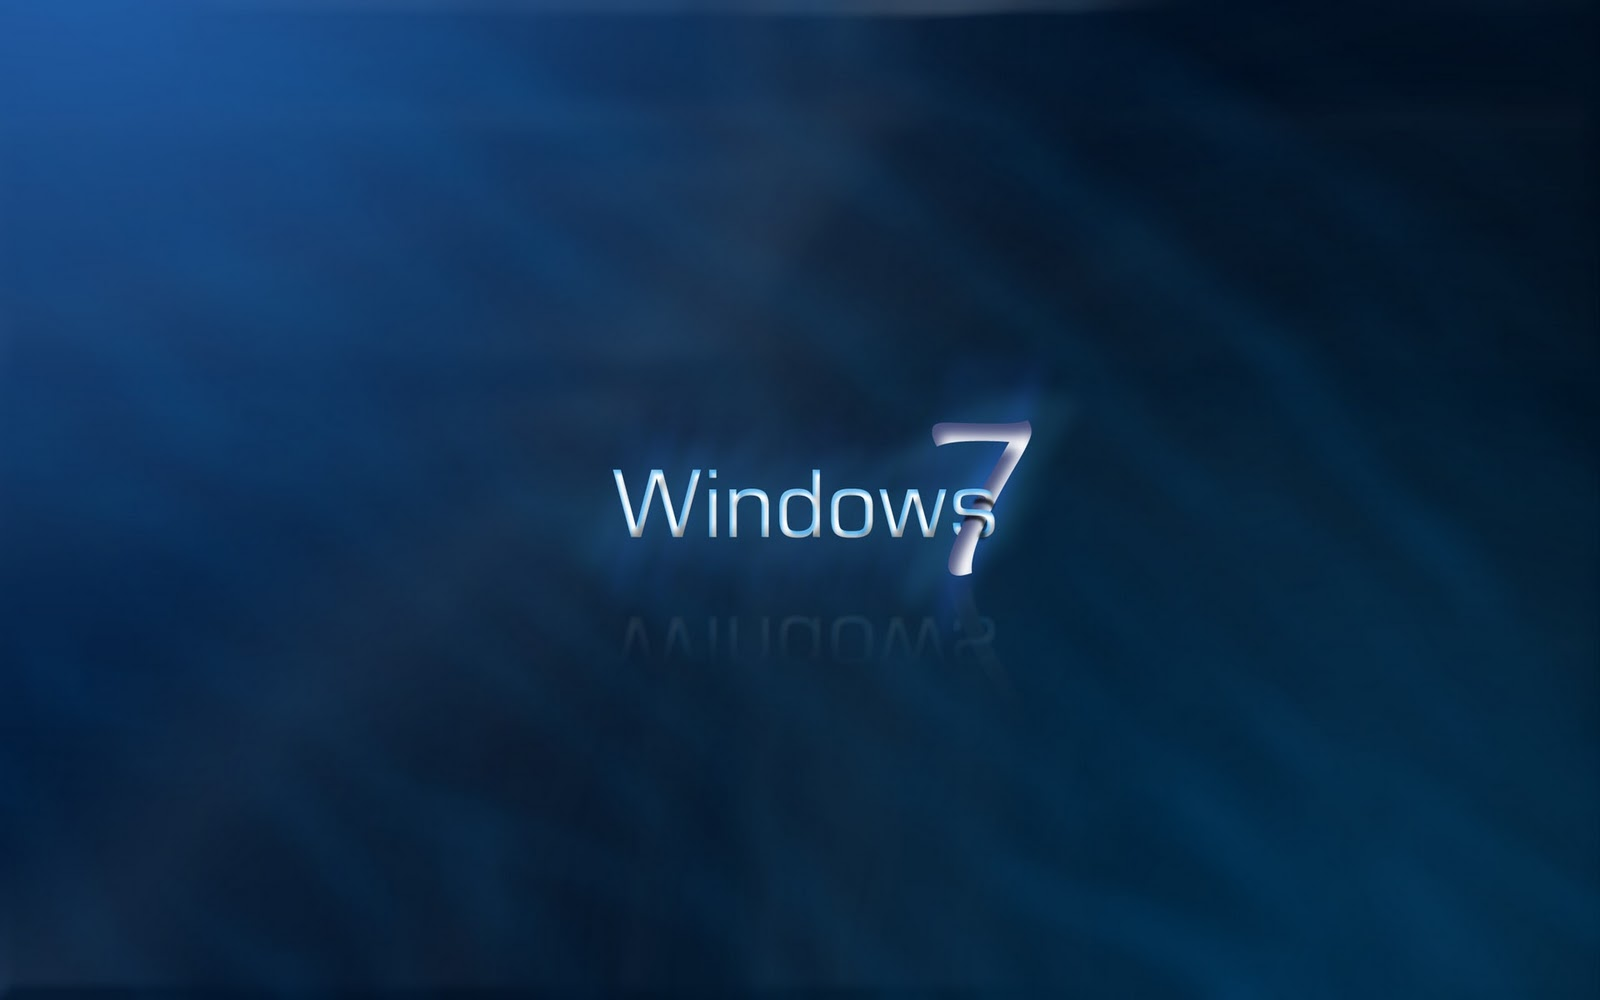 windows 7 achtergronden hd wallpapers